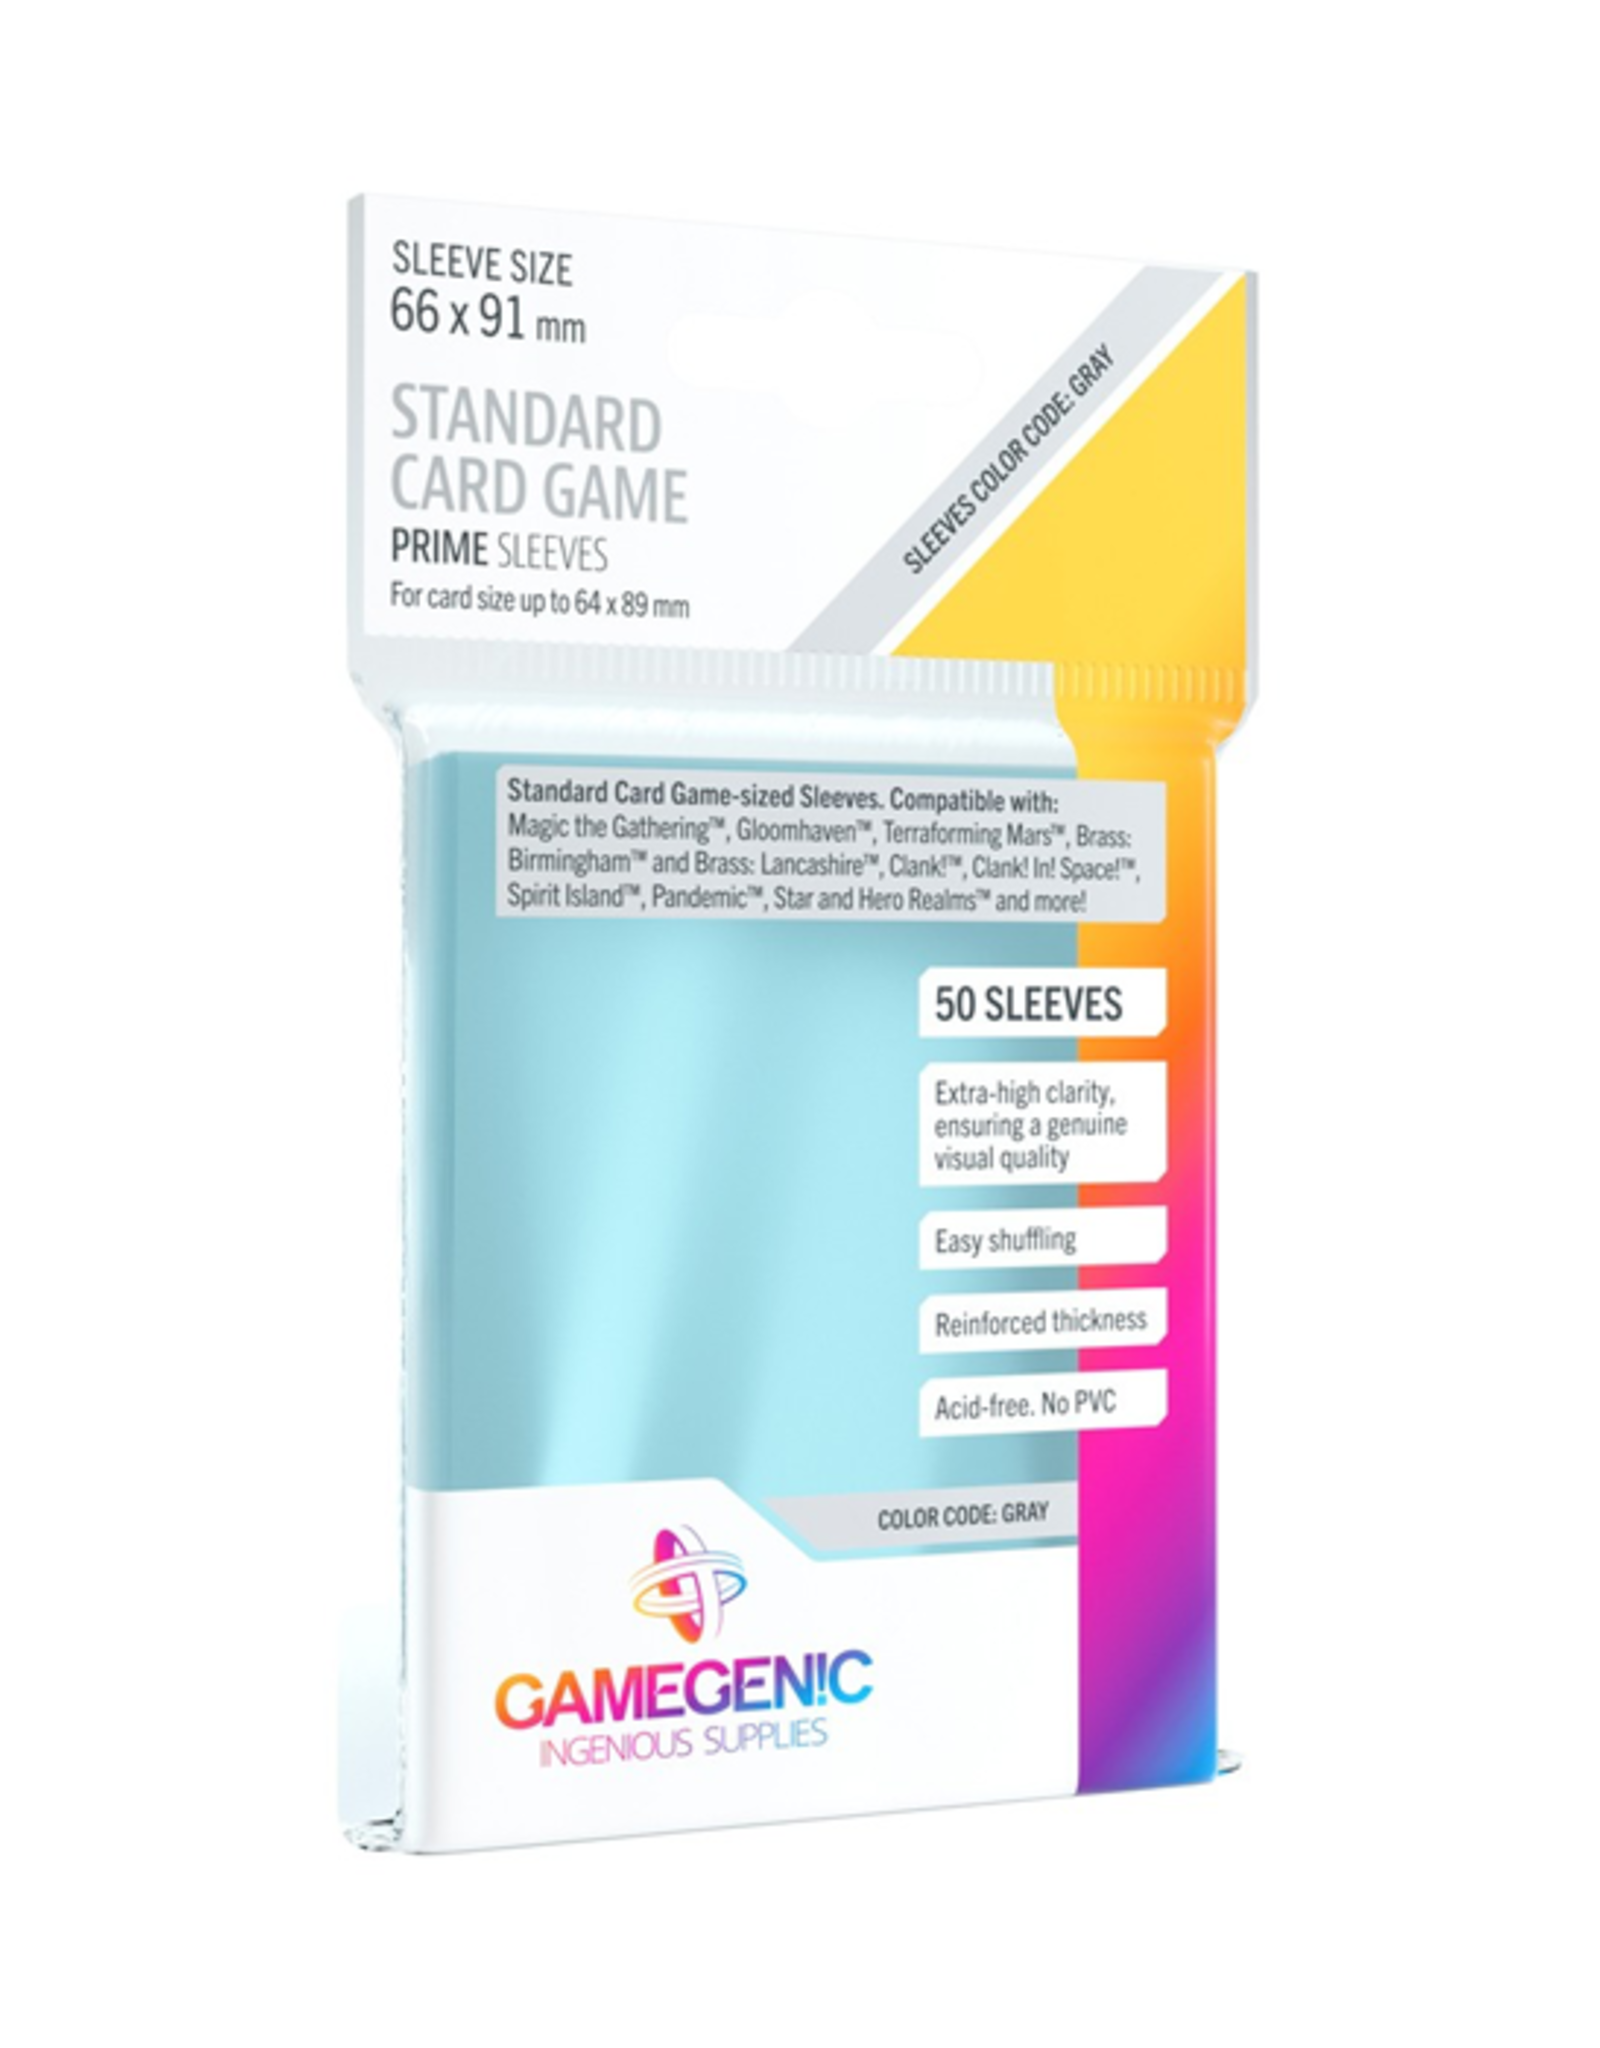 Gamegenic Gamegenic: Sleeves - Board Game - Standard Card Game